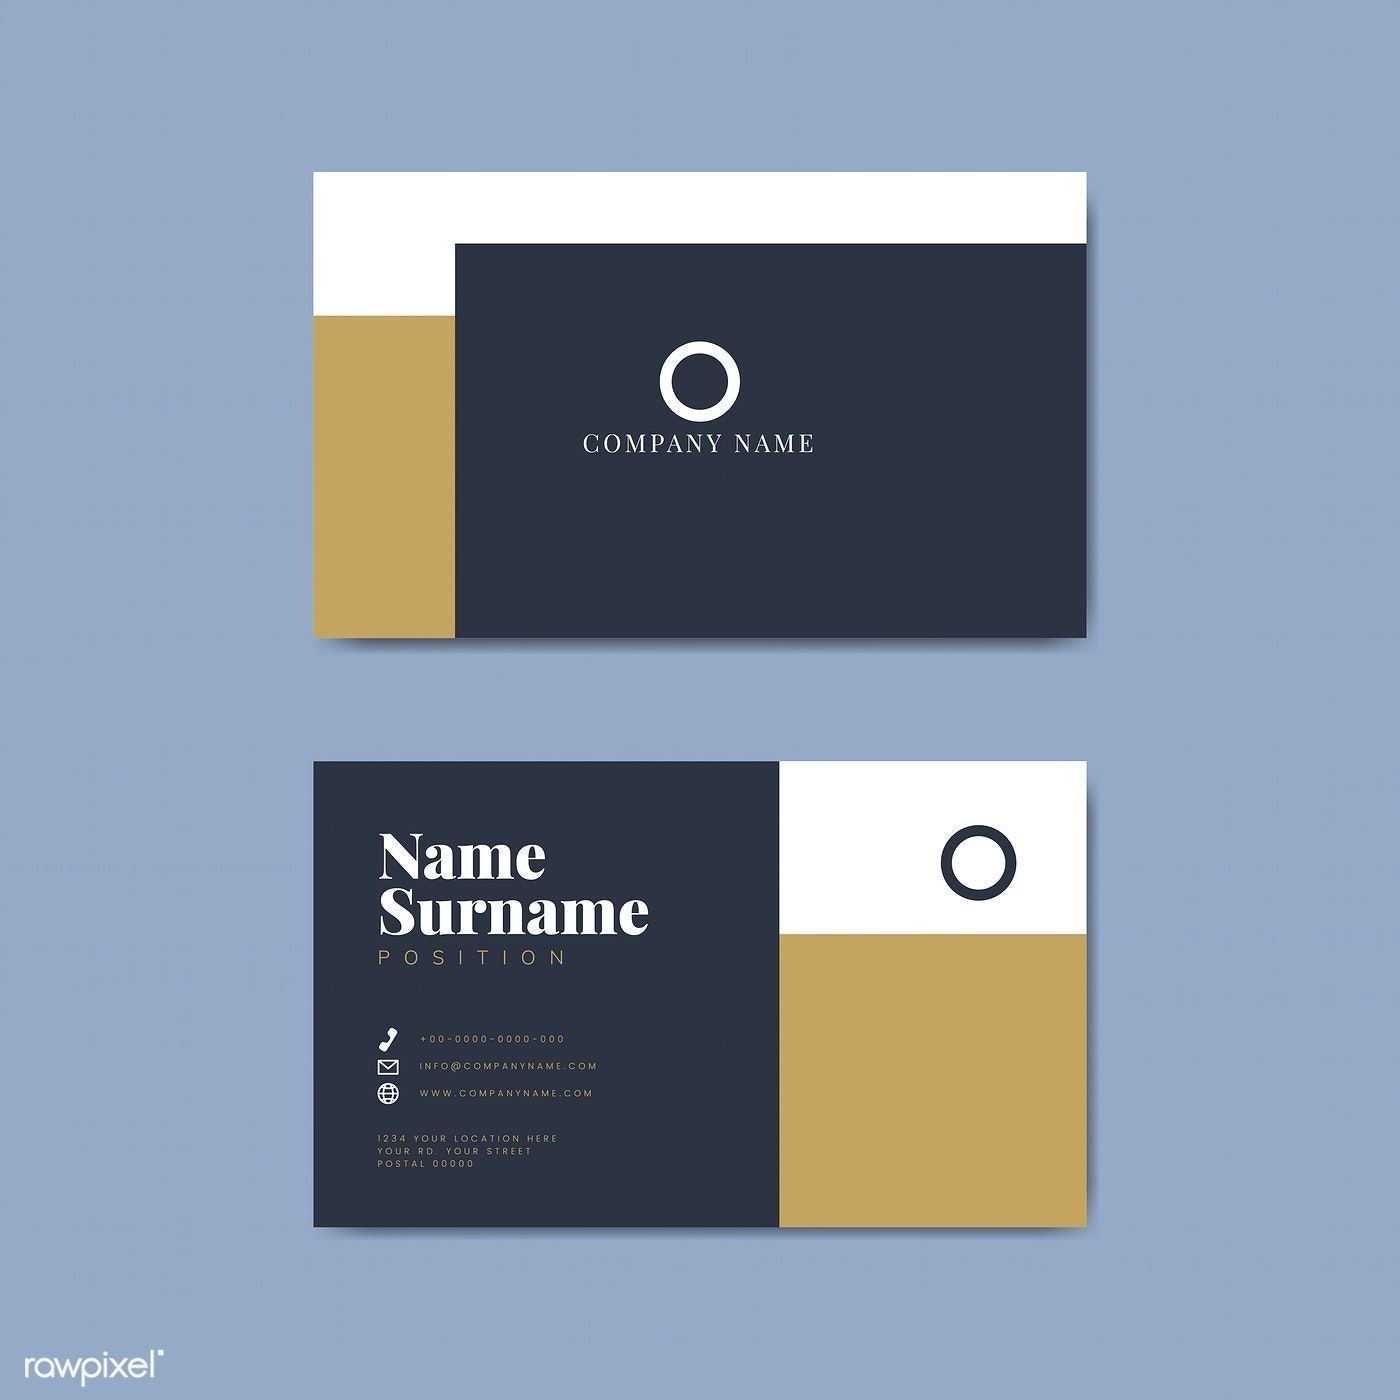 000 Outstanding Download Busines Card Template Example  Free For Illustrator Visiting Layout Word 20101400